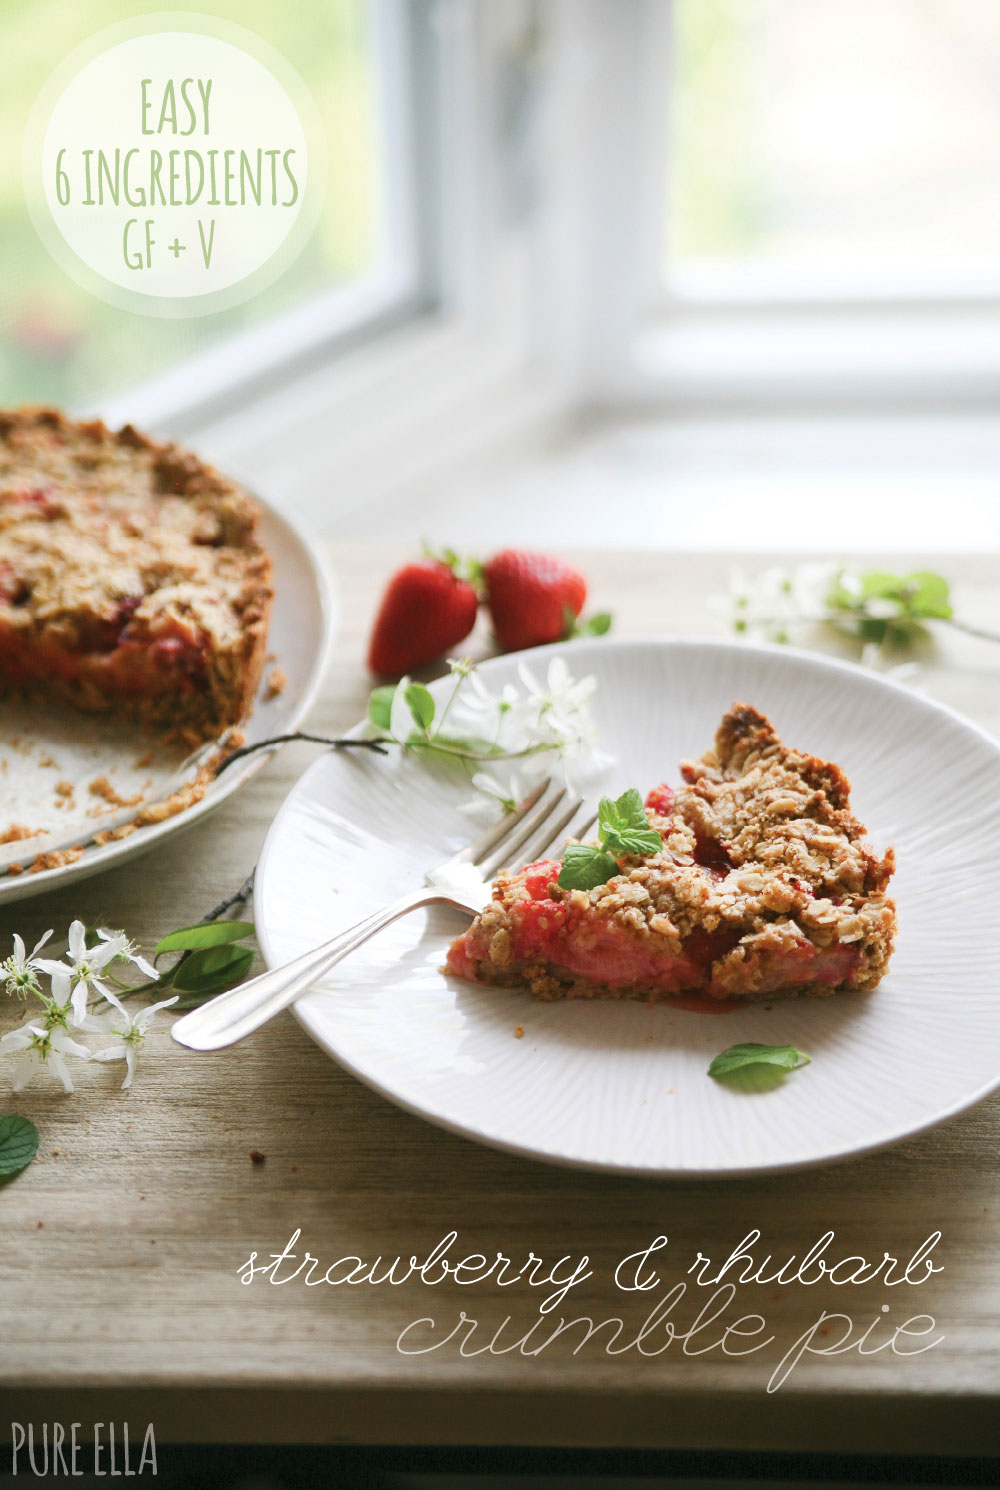 Strawberry & Rhubarb Gluten-free Crumble Pie - Pure Ella